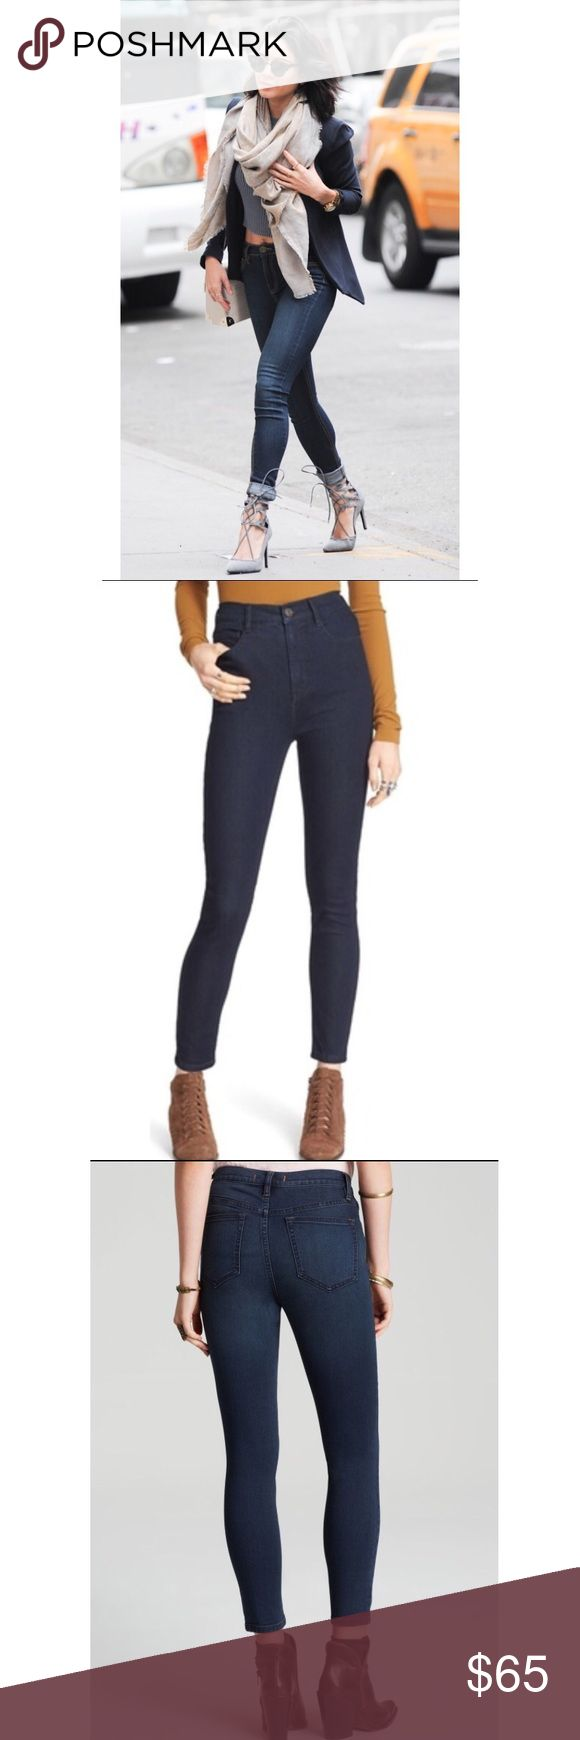 "Free People Skinny Jeans seen on Vanessa Hudgens Sexy Free People skinny denims jeans as seen on Vanessa Hudges! Size 28"" waist size Free People Jeans Skinny"